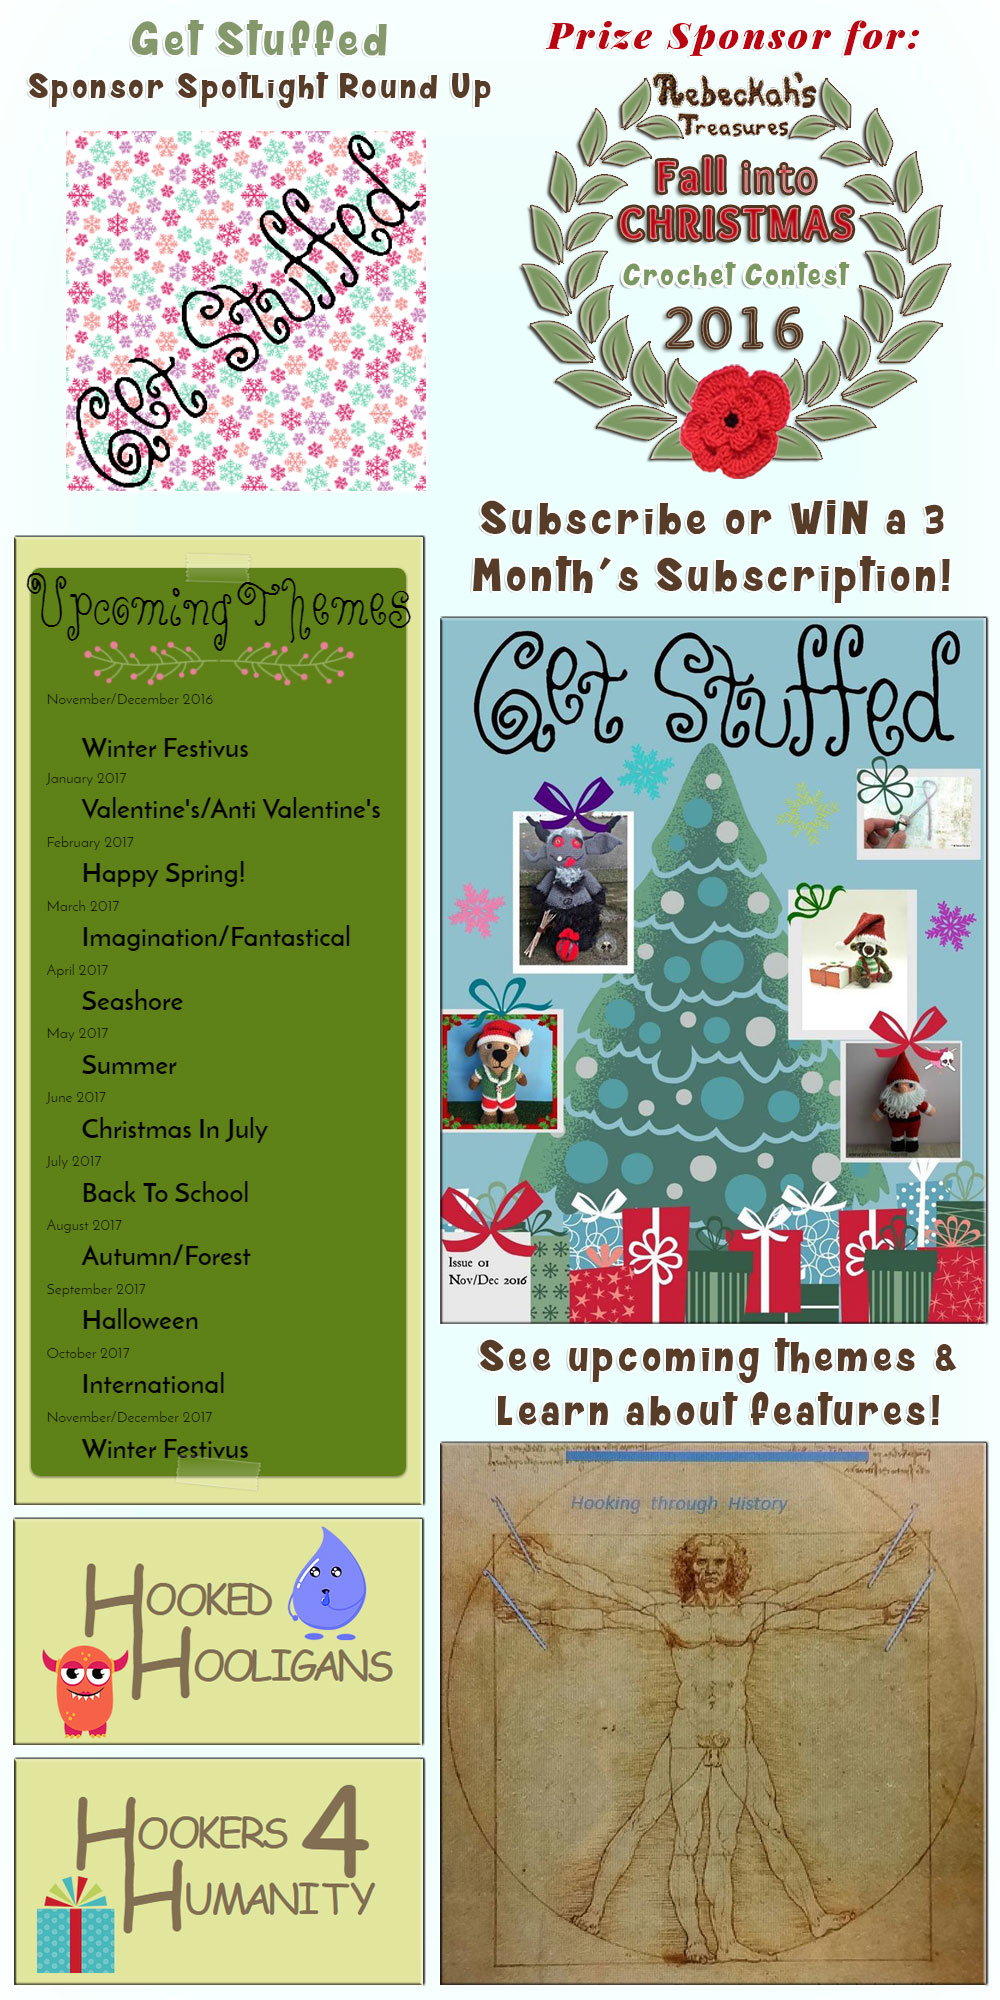 Get Stuffed - Sponsor Spotlight via @beckastreasures | #WIN a 3 month's subscription, see upcoming themes and learn all about some fabulous features from #GetStuffed | #fallintochristmas2016 #crochetcontest #spotlight #crochet #feature